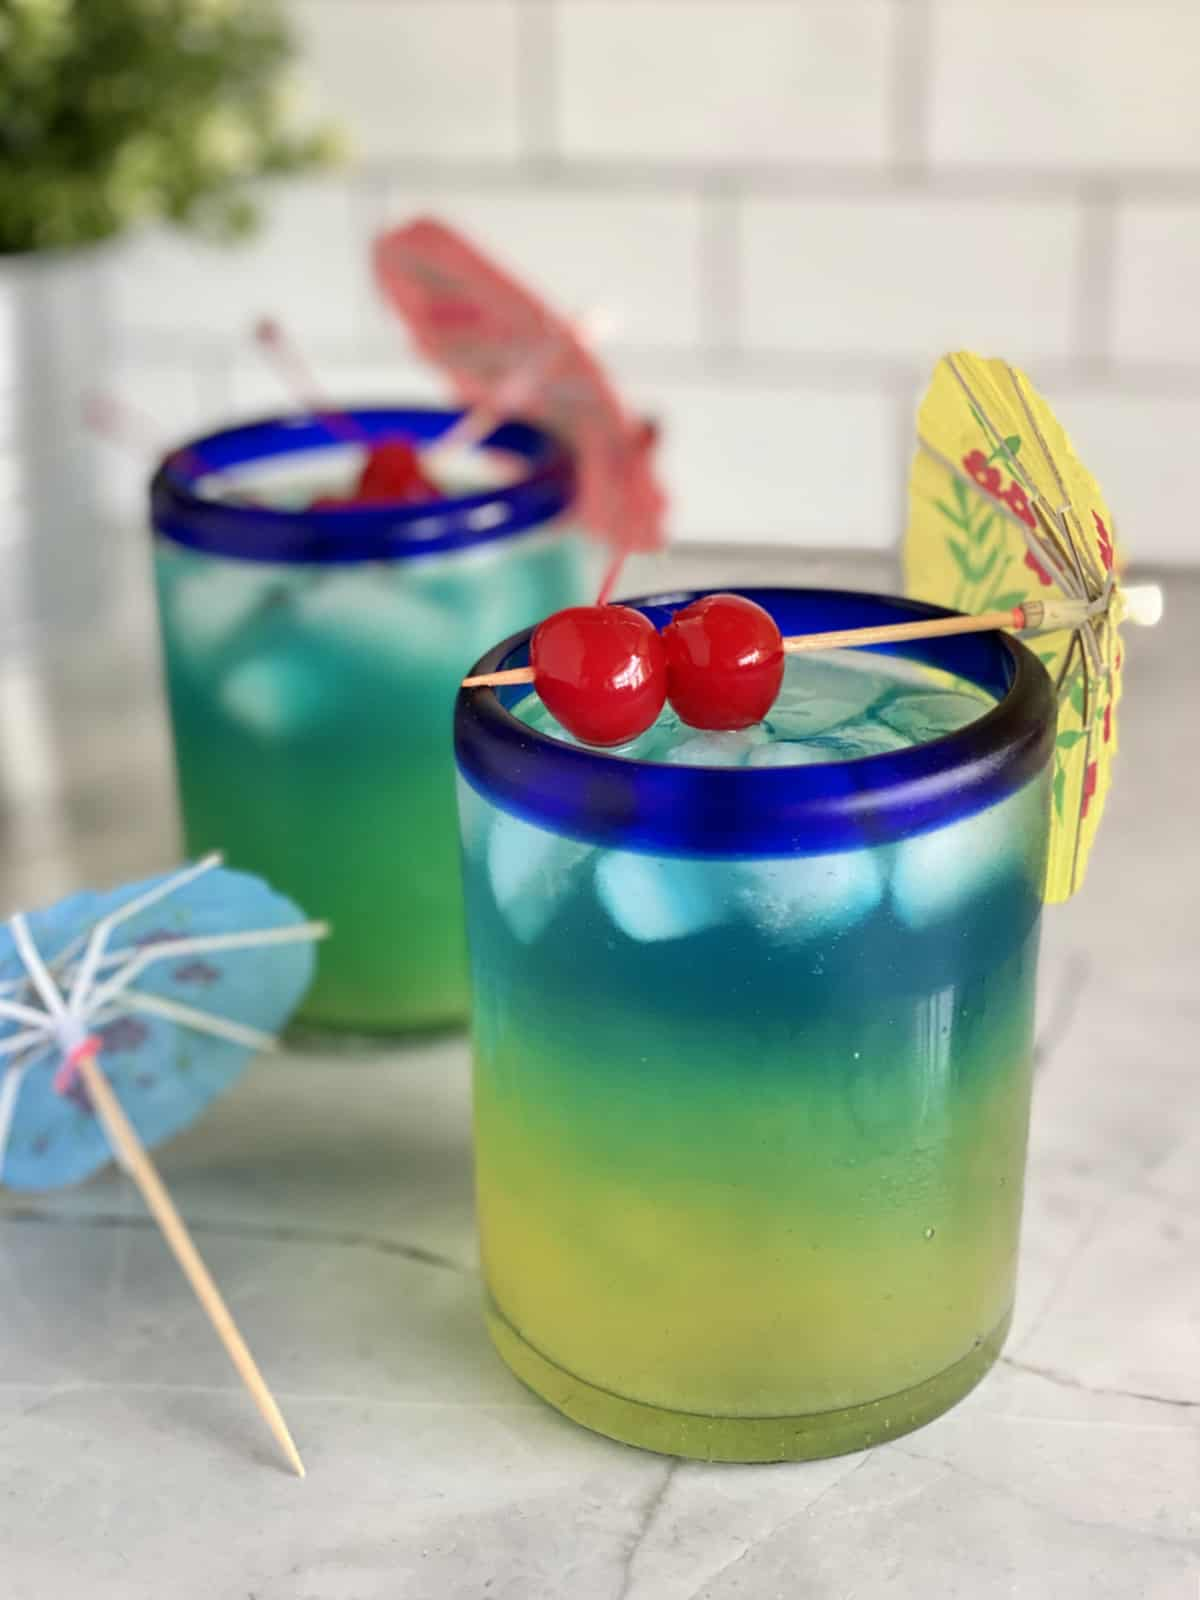 Two drinks that are yellow, green, blue with 2 maraschino cherries on top with a paper umbrella.